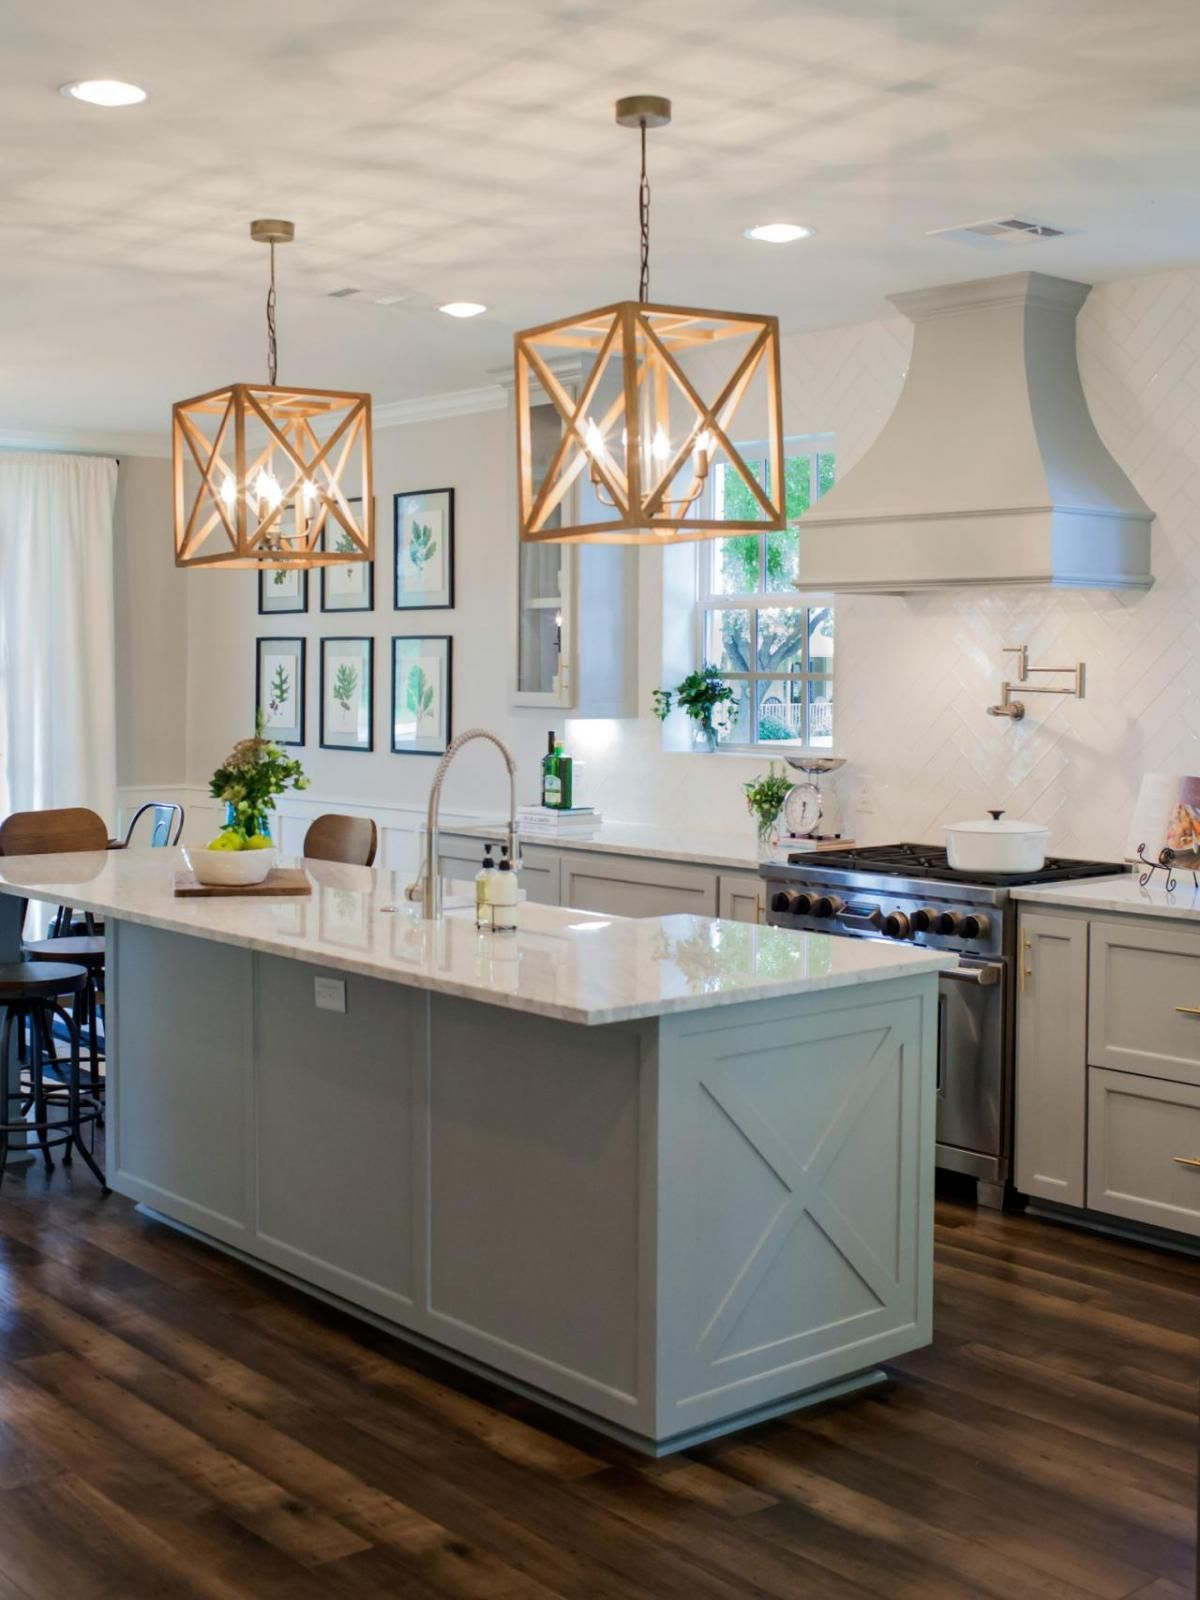 Classic Kitchen Lighting Classic Kitchen Island Lighting Never Goes Out Of Style Hgtv